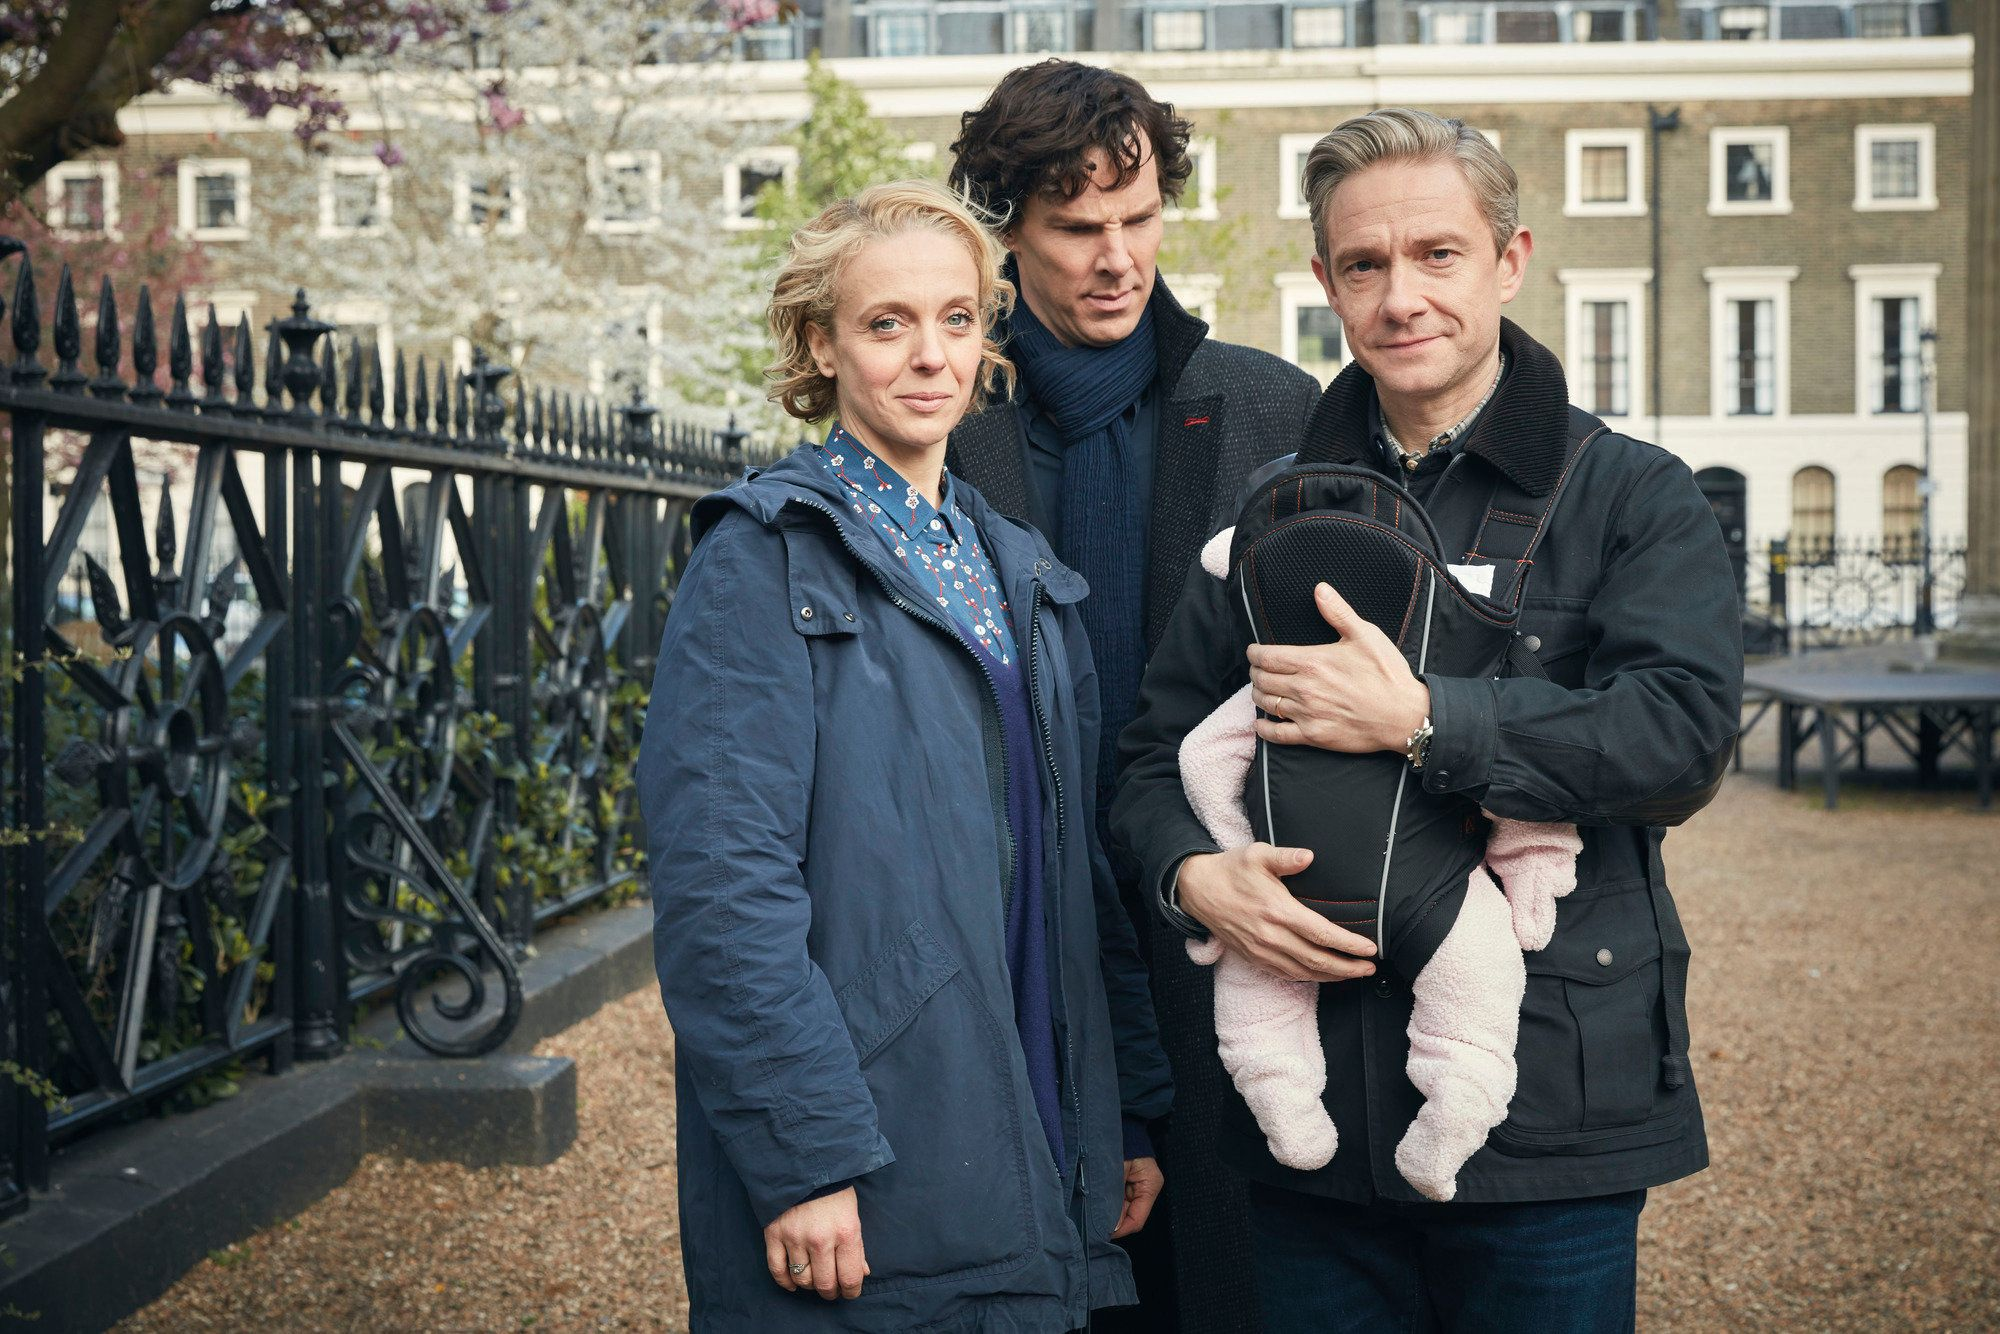 Why Is Benedict Cumberbatch Looking So Grumpy In These New 'Sherlock' Pictures?